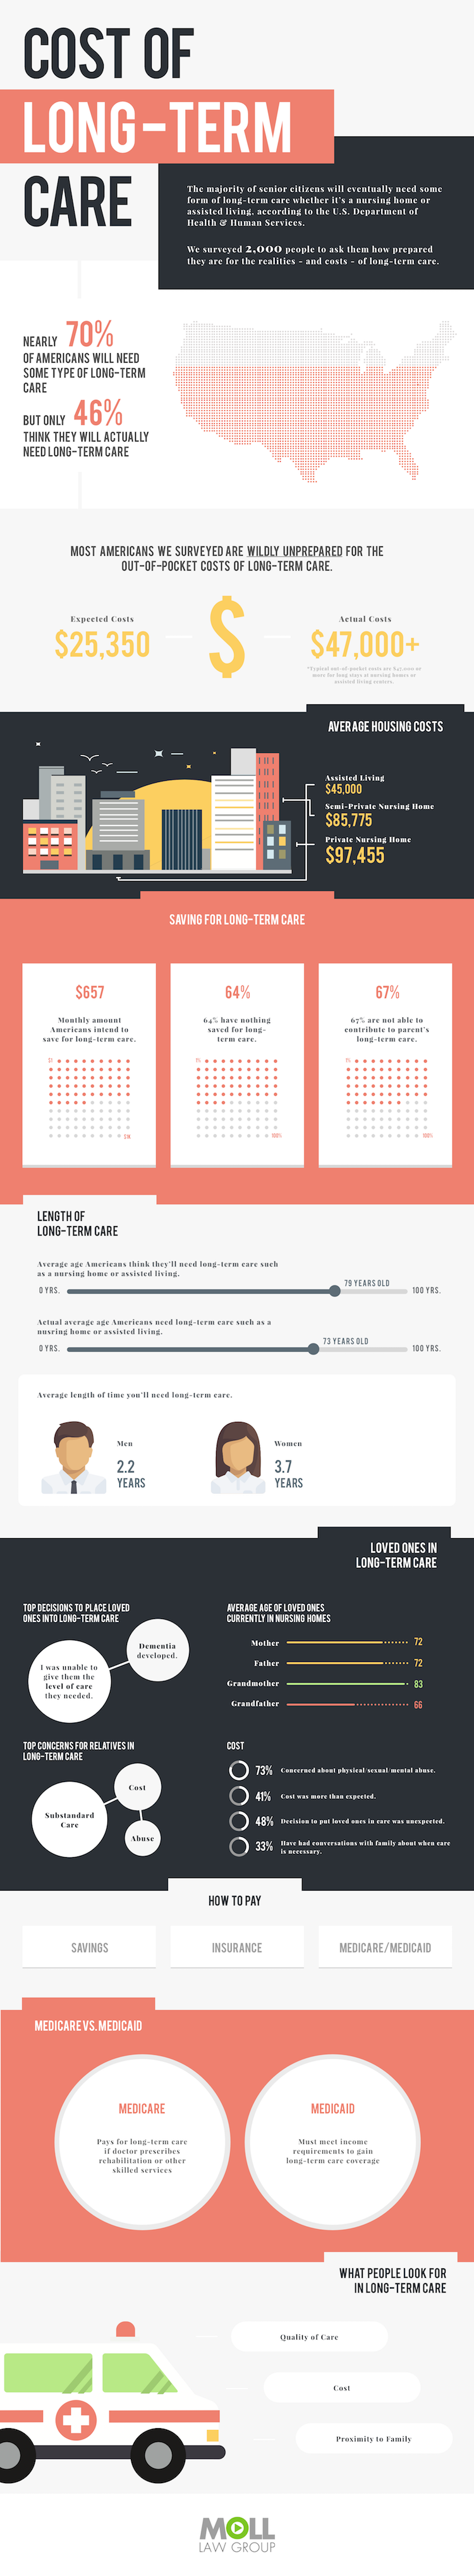 Cost of Long-Term Care: Perceptions Vs Reality - Infographic